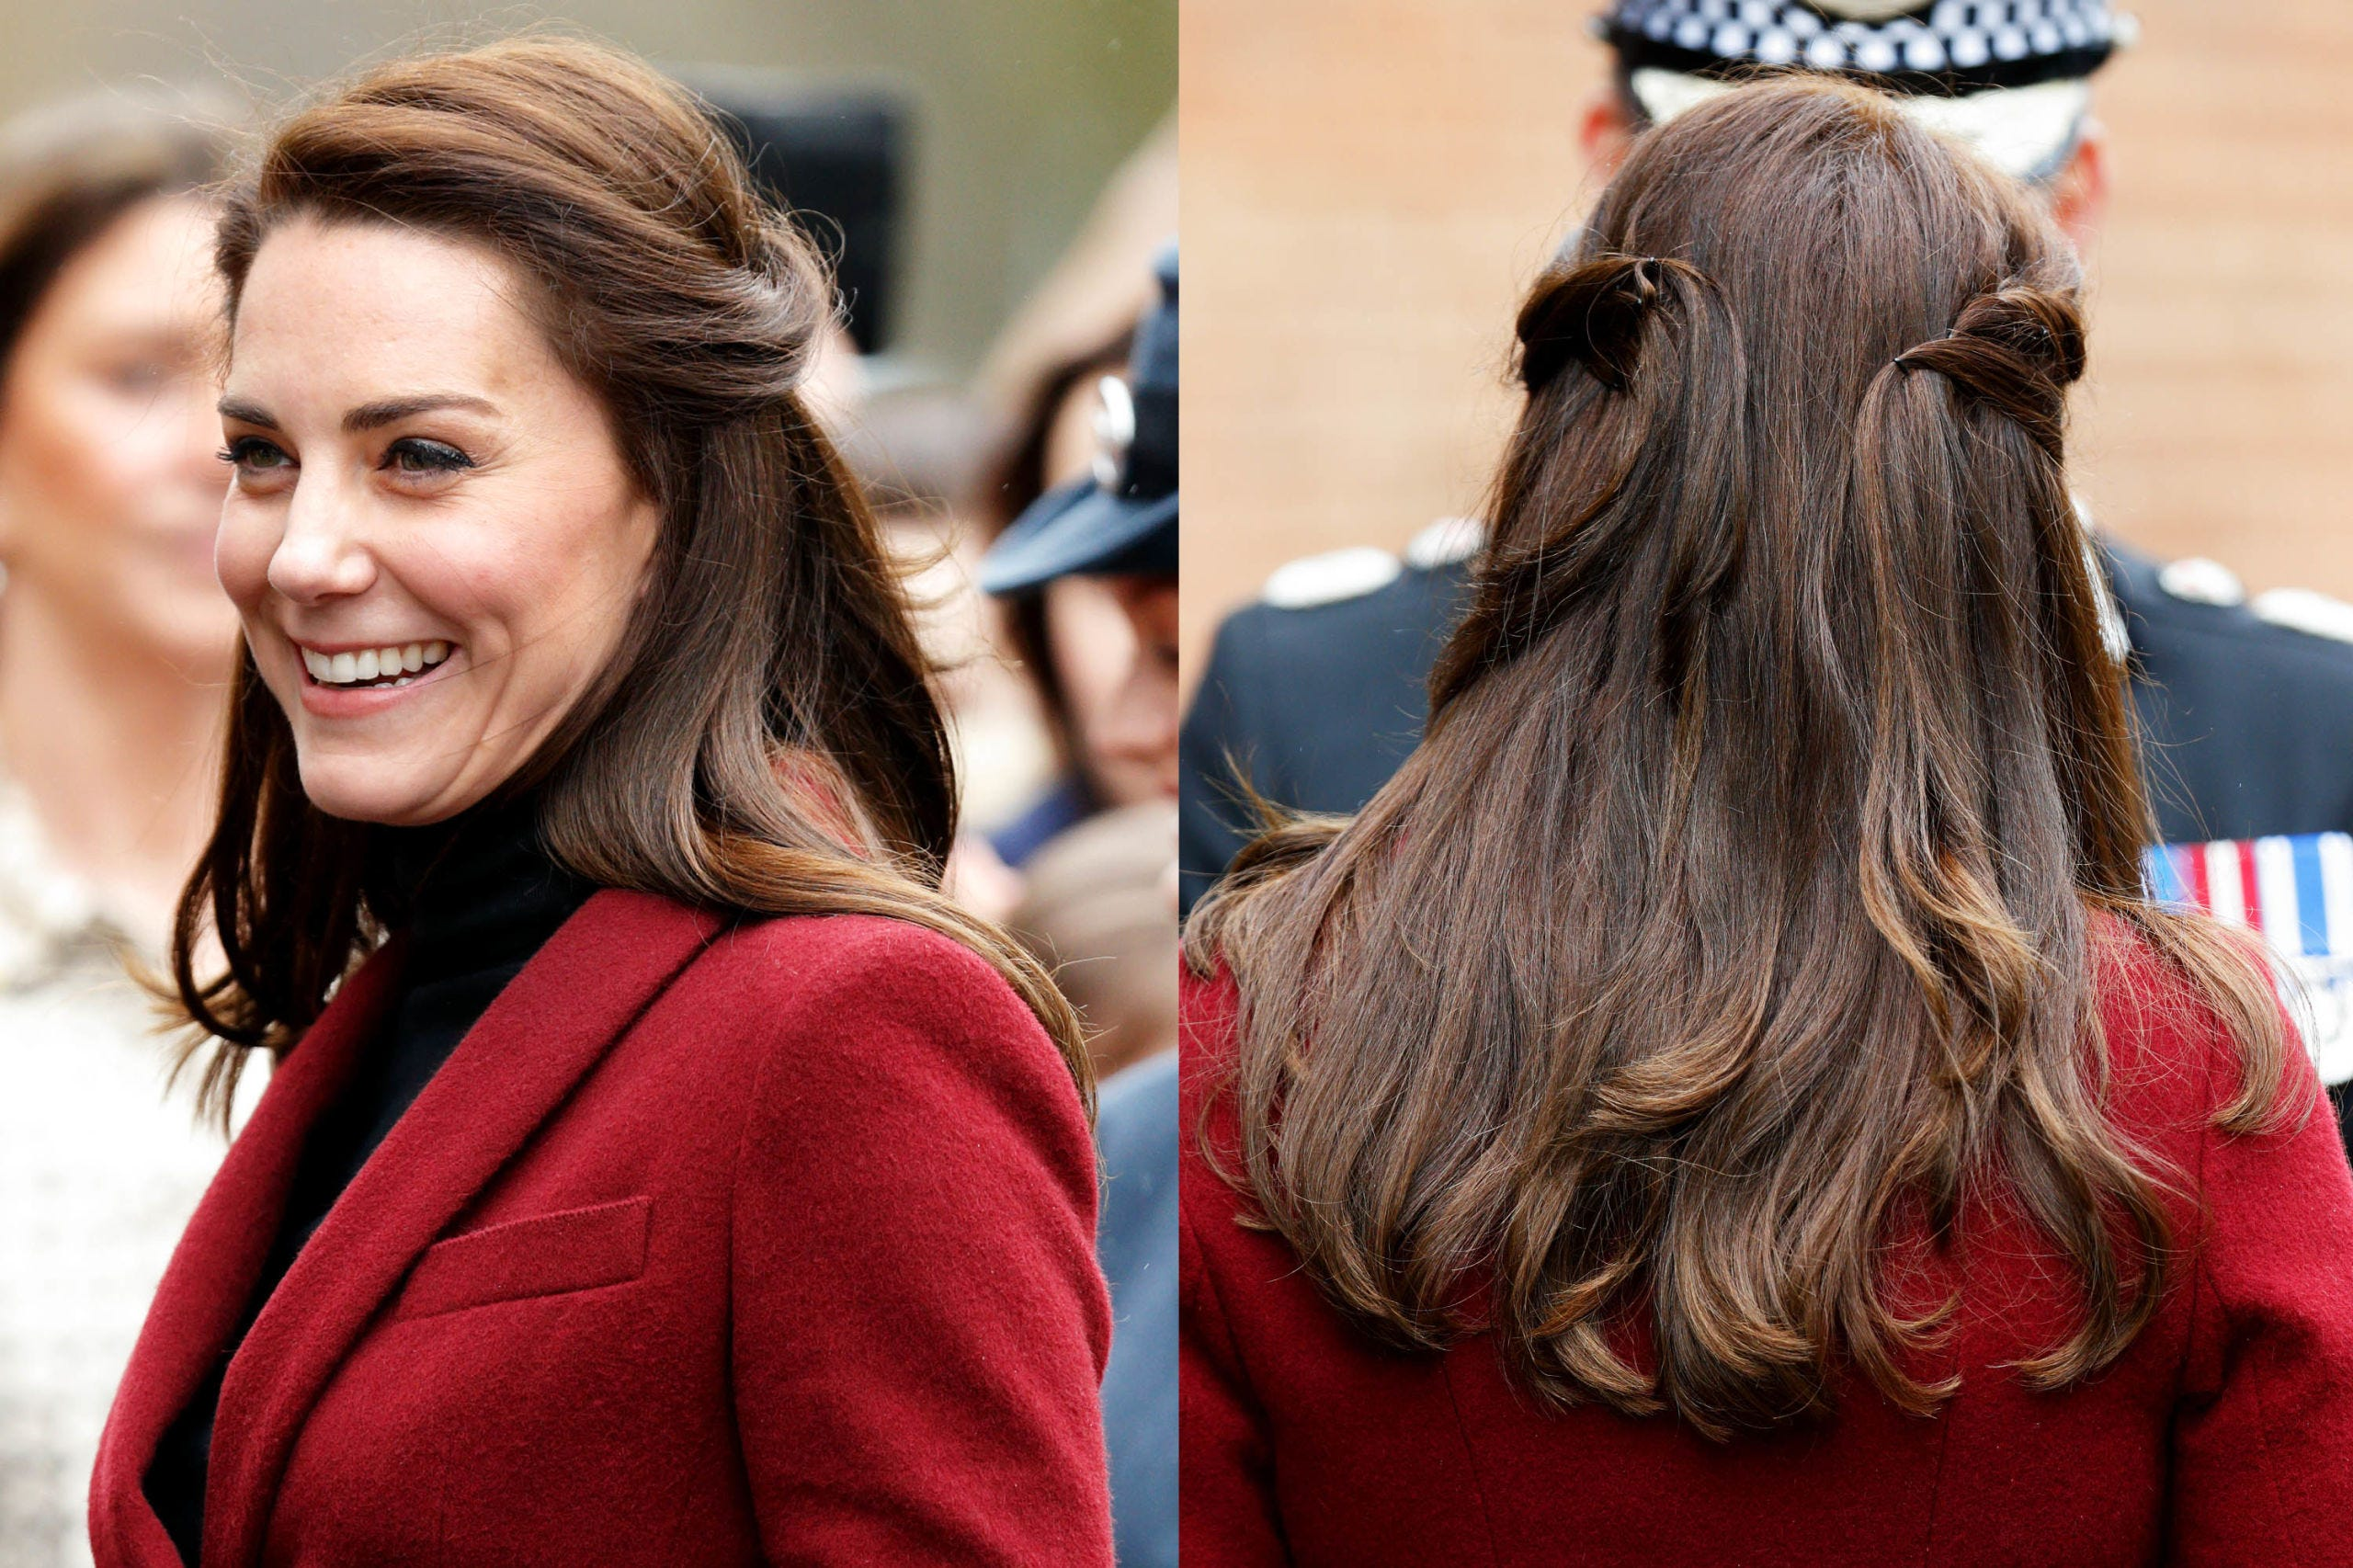 Hairstyle, Style, Long hair, Beauty, Brown hair, Hair accessory, Street fashion, Maroon, Hair coloring, Tooth,